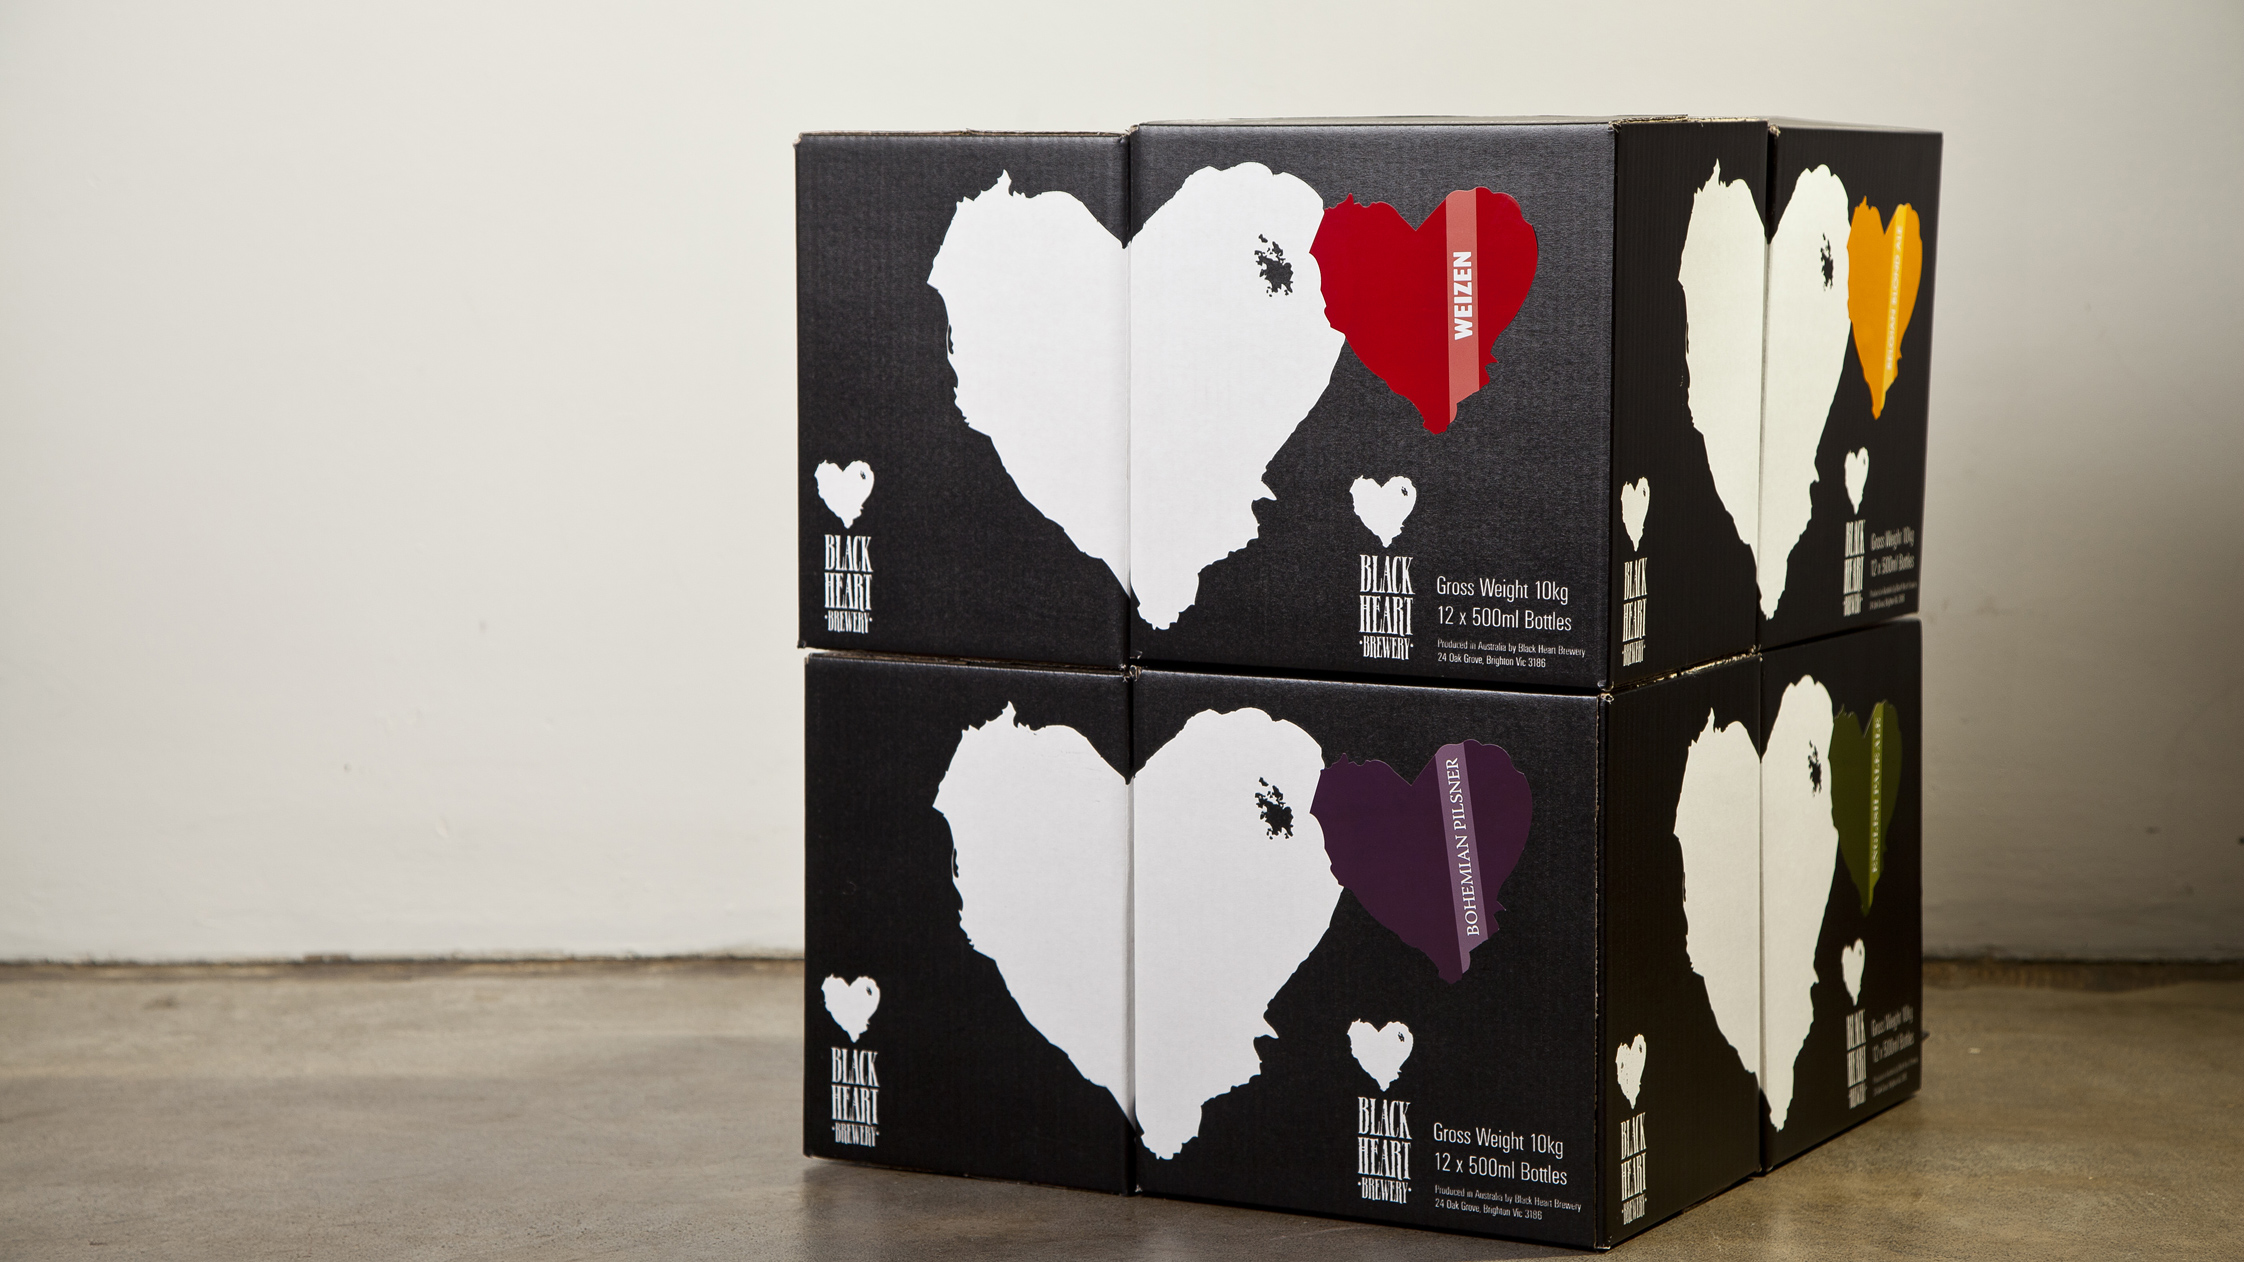 Black Heart Brewery Packaging